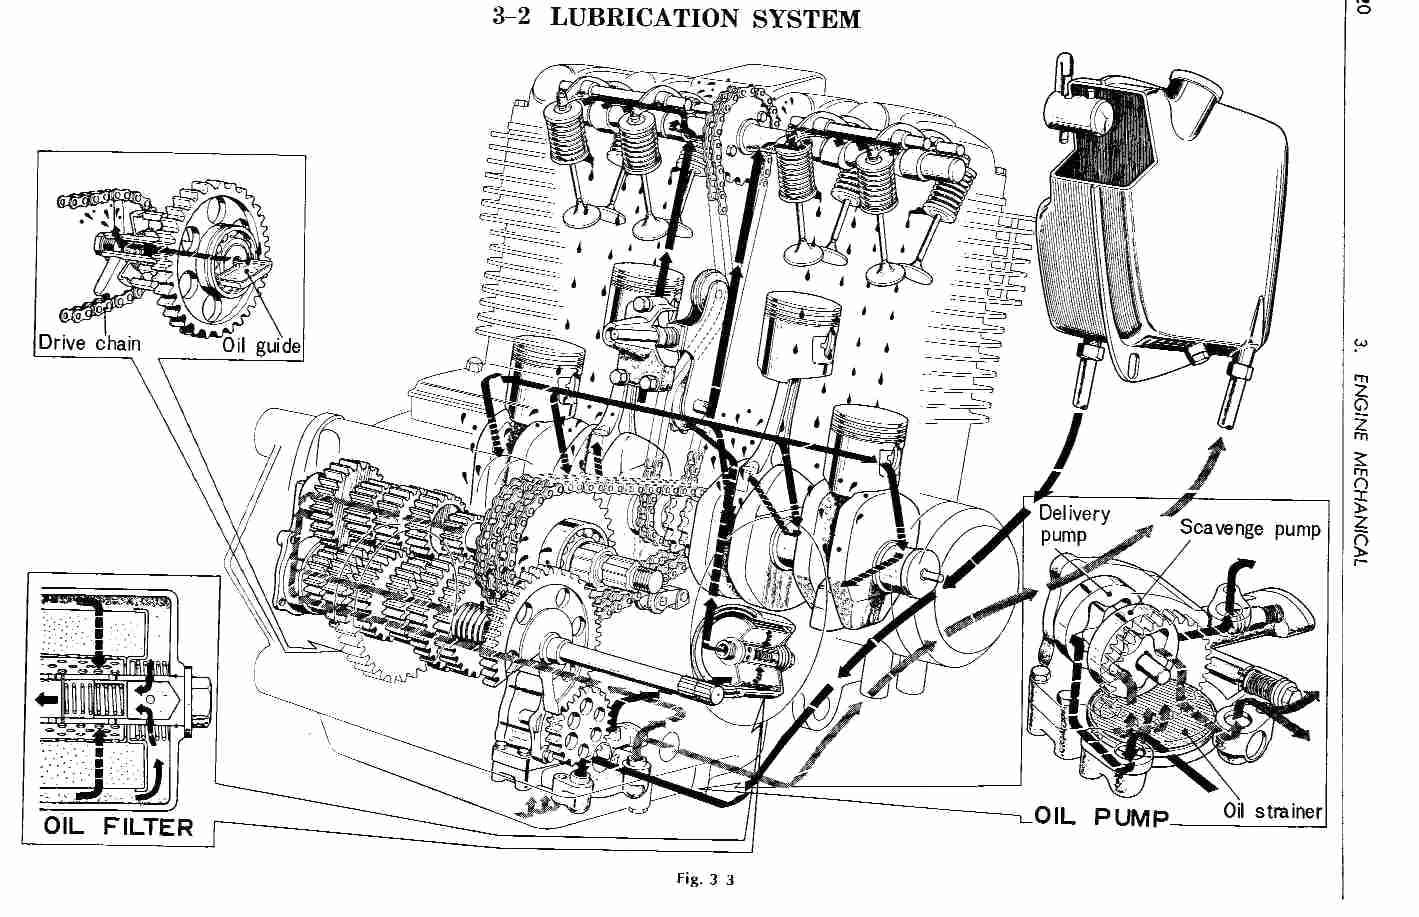 Luxury cb 750 wiring diagram inspiration everything you need to